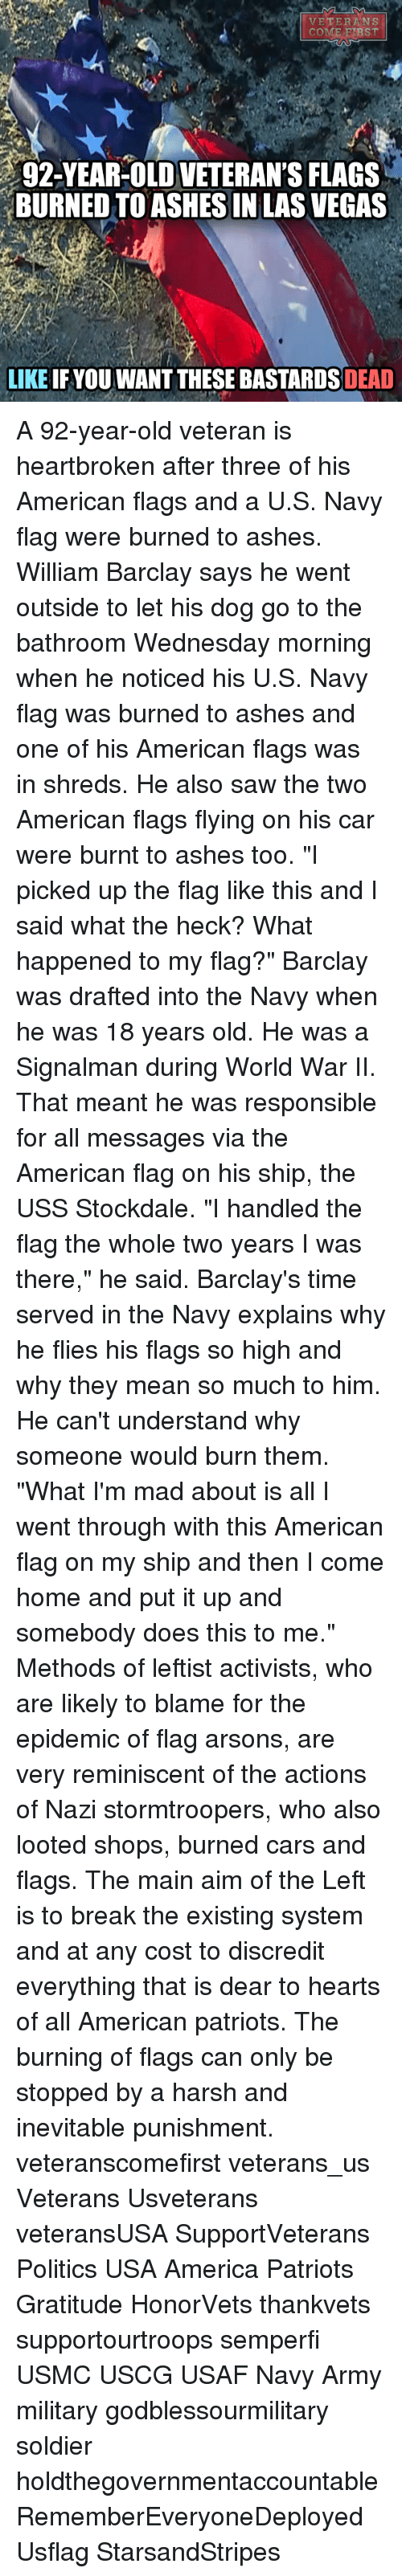 """America, Cars, and Memes: VETERANS  COM  ERST  92-YEAR-OLD VETERAN'S FLAGS  BURNED TO ASHESIN LAS VEGAS  LIKE IF YOU WANT THESE BASTARDS DEAD A 92-year-old veteran is heartbroken after three of his American flags and a U.S. Navy flag were burned to ashes. William Barclay says he went outside to let his dog go to the bathroom Wednesday morning when he noticed his U.S. Navy flag was burned to ashes and one of his American flags was in shreds. He also saw the two American flags flying on his car were burnt to ashes too. """"I picked up the flag like this and I said what the heck? What happened to my flag?"""" Barclay was drafted into the Navy when he was 18 years old. He was a Signalman during World War II. That meant he was responsible for all messages via the American flag on his ship, the USS Stockdale. """"I handled the flag the whole two years I was there,"""" he said. Barclay's time served in the Navy explains why he flies his flags so high and why they mean so much to him. He can't understand why someone would burn them. """"What I'm mad about is all I went through with this American flag on my ship and then I come home and put it up and somebody does this to me."""" Methods of leftist activists, who are likely to blame for the epidemic of flag arsons, are very reminiscent of the actions of Nazi stormtroopers, who also looted shops, burned cars and flags. The main aim of the Left is to break the existing system and at any cost to discredit everything that is dear to hearts of all American patriots. The burning of flags can only be stopped by a harsh and inevitable punishment. veteranscomefirst veterans_us Veterans Usveterans veteransUSA SupportVeterans Politics USA America Patriots Gratitude HonorVets thankvets supportourtroops semperfi USMC USCG USAF Navy Army military godblessourmilitary soldier holdthegovernmentaccountable RememberEveryoneDeployed Usflag StarsandStripes"""